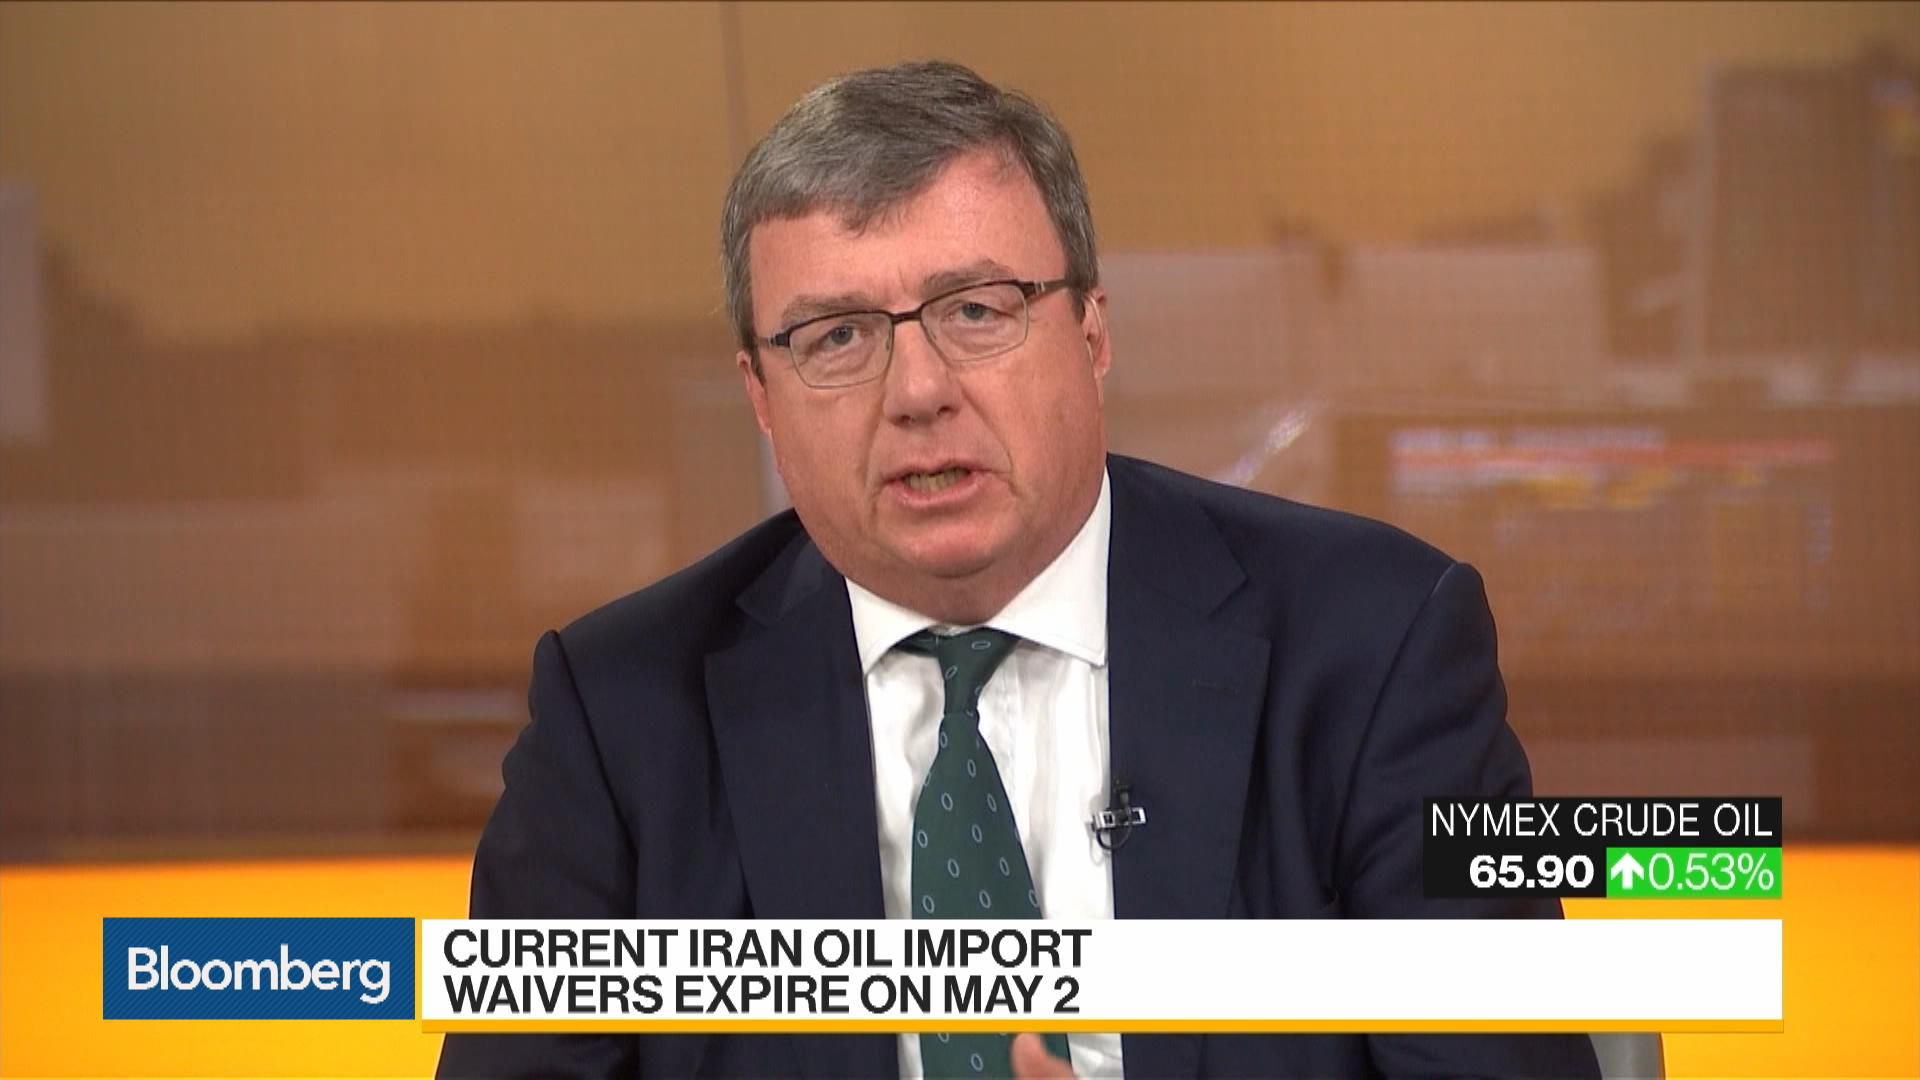 Oil Price Is Well Supported in the Short-Term, Says Waverton Investment's Dinning